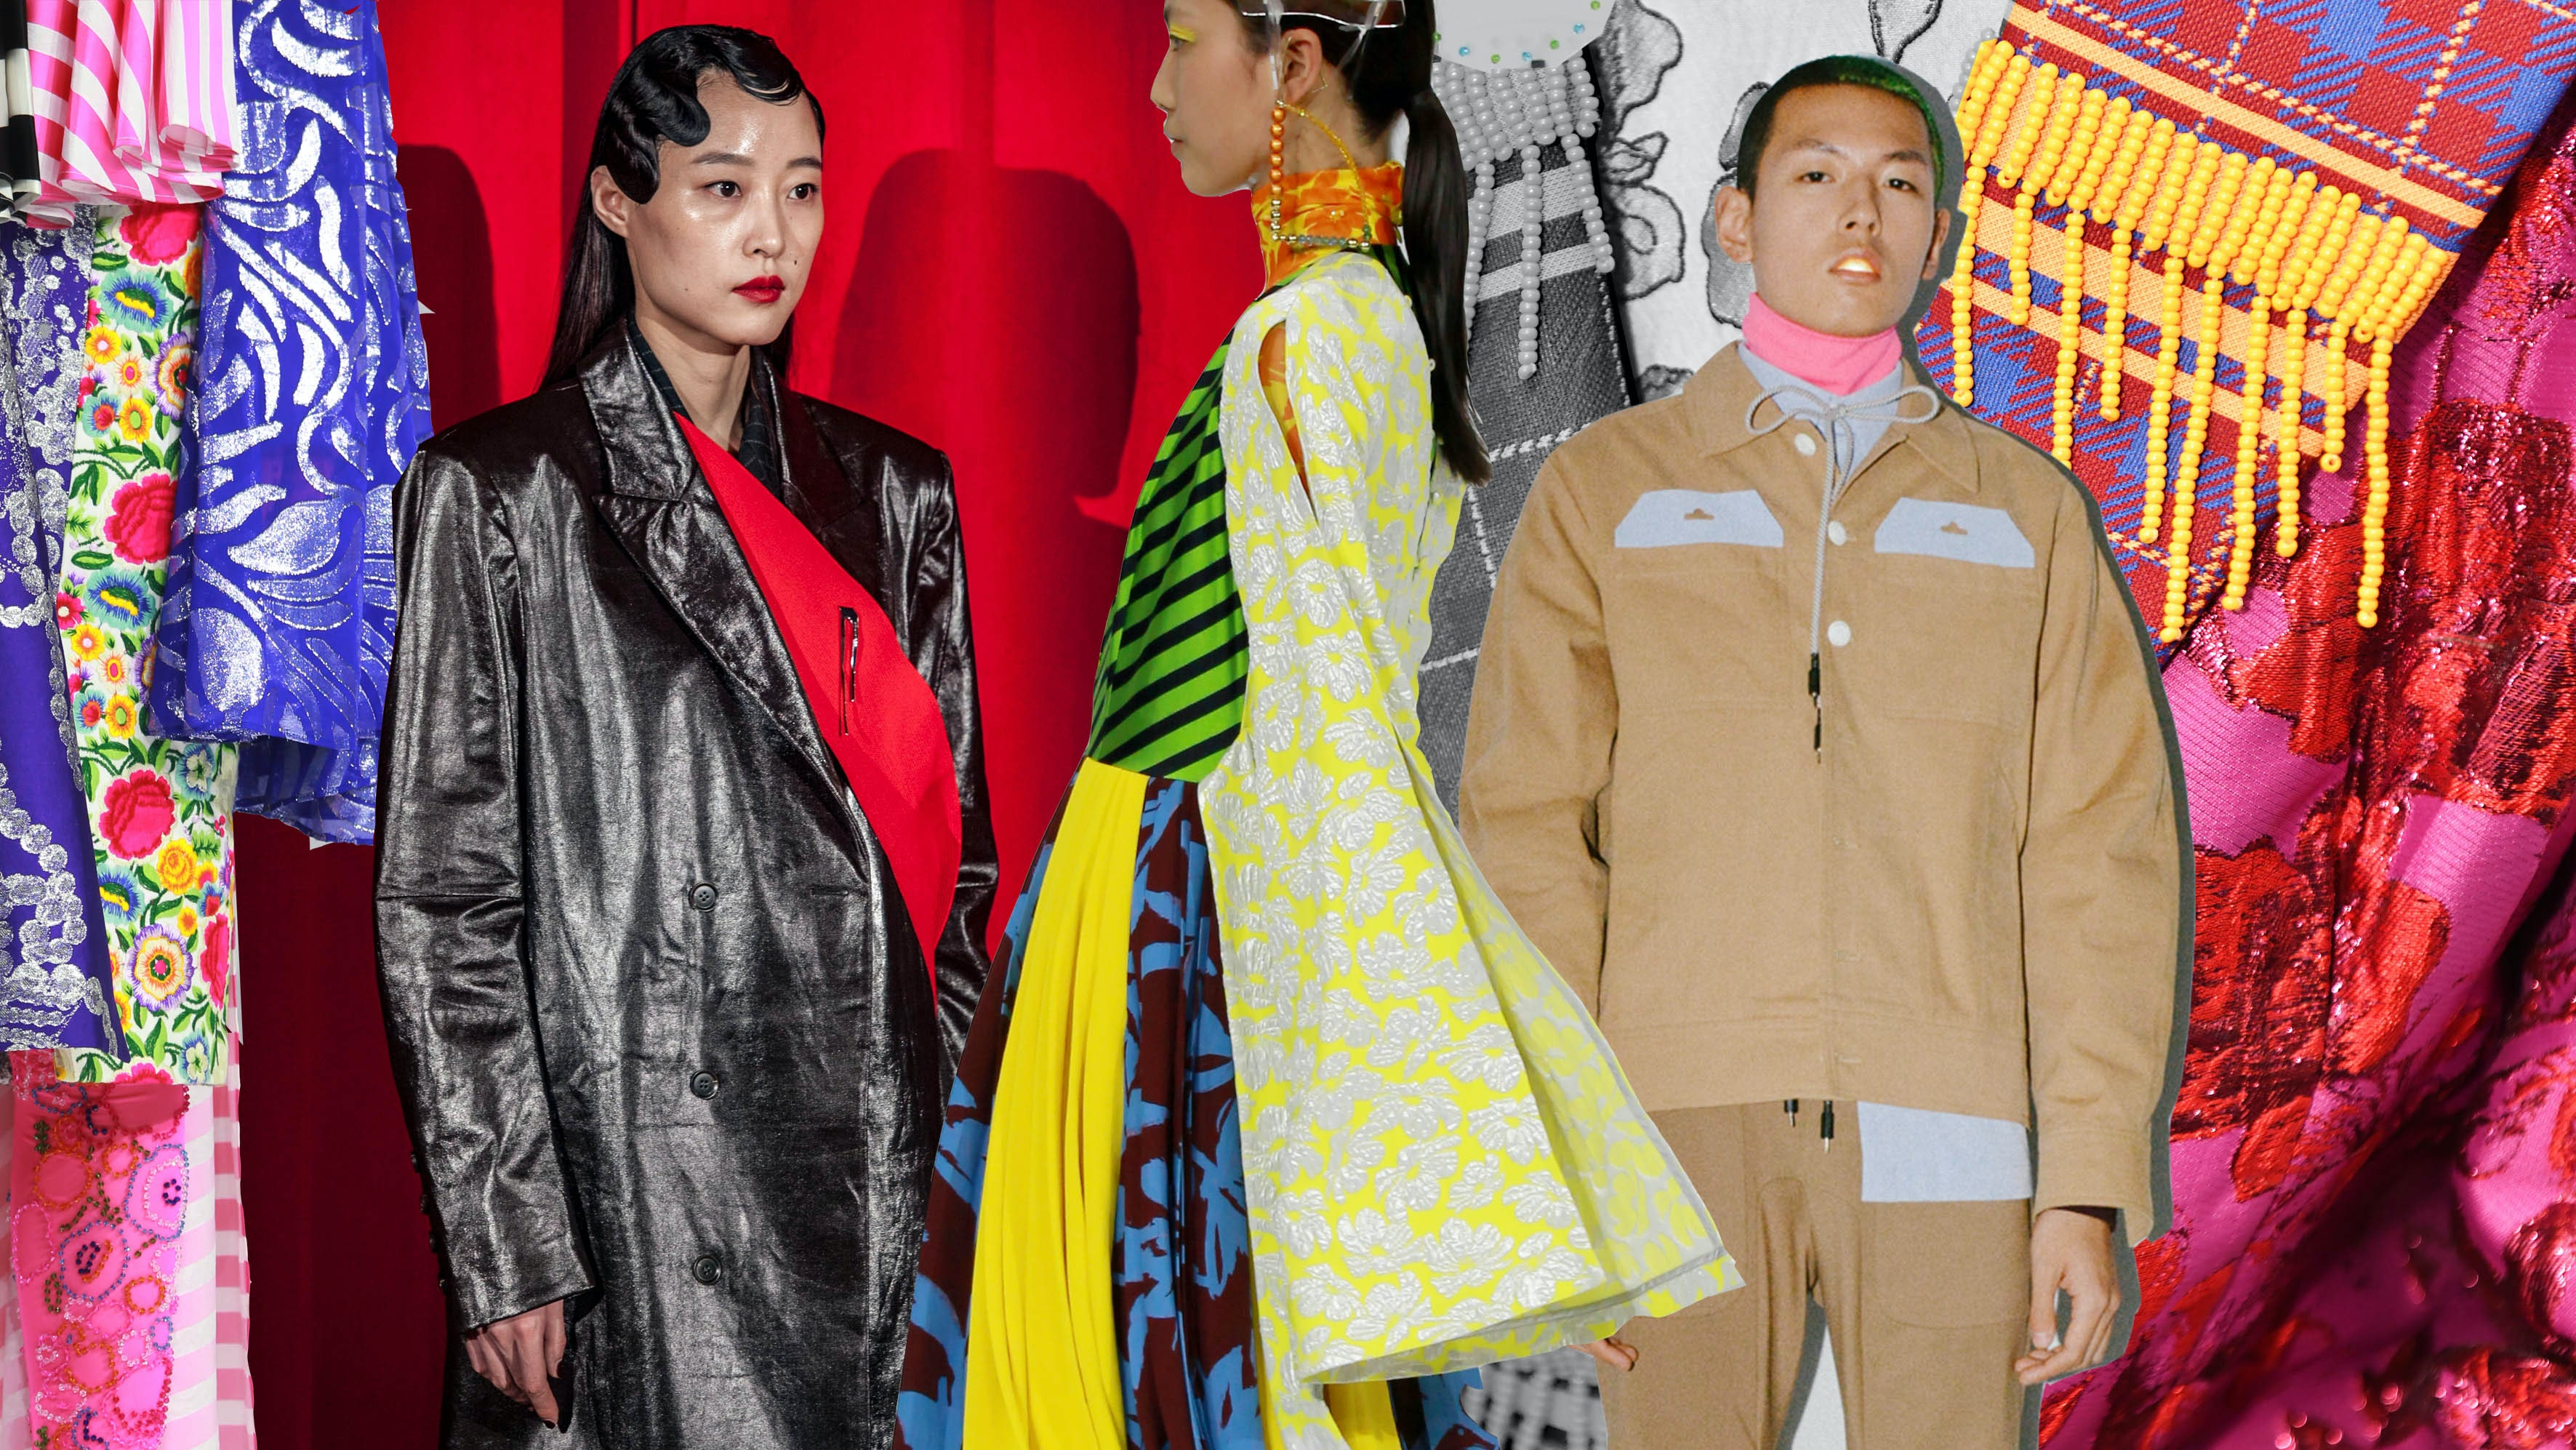 Images from Ximon Lee, Shuting Qiu, and Staffonly | Collage by BoF